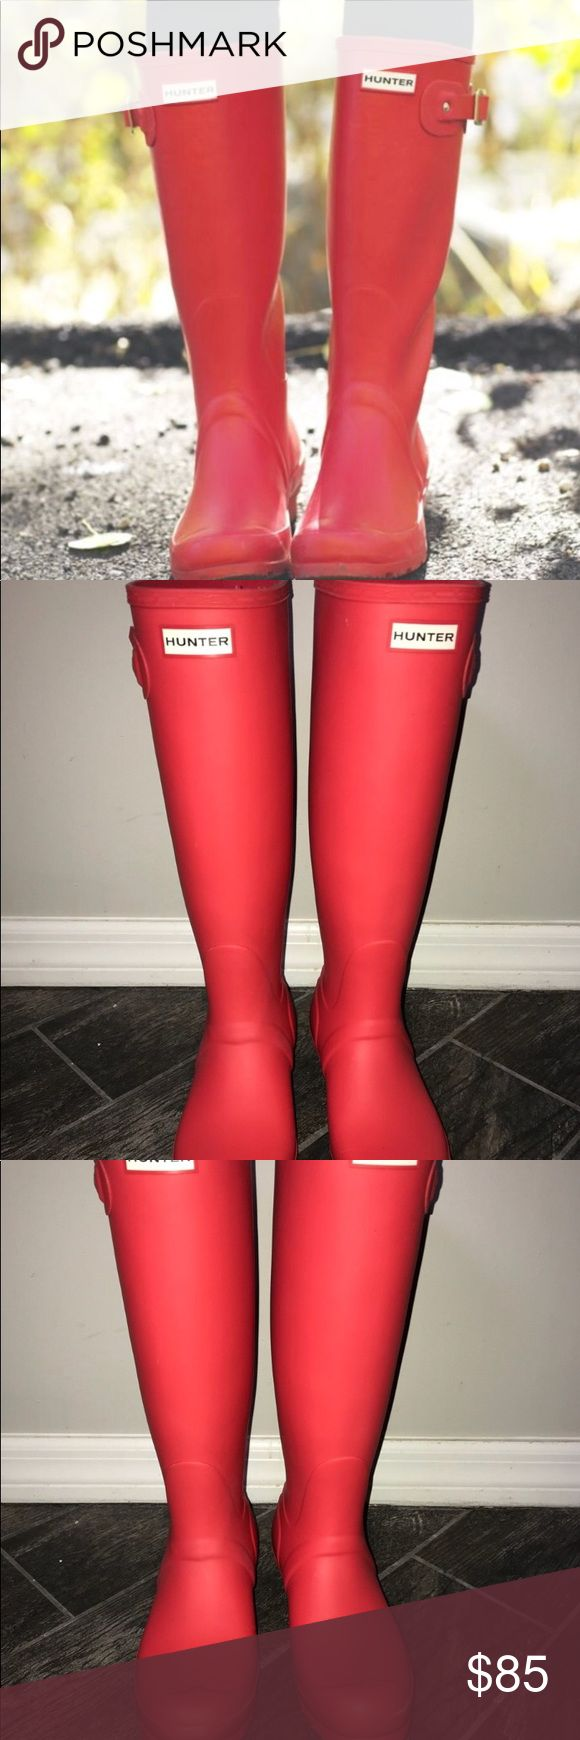 Red Hunter Boots size 8 Excellent condition. Hot red color. Worn once. Hunter Shoes Winter & Rain Boots